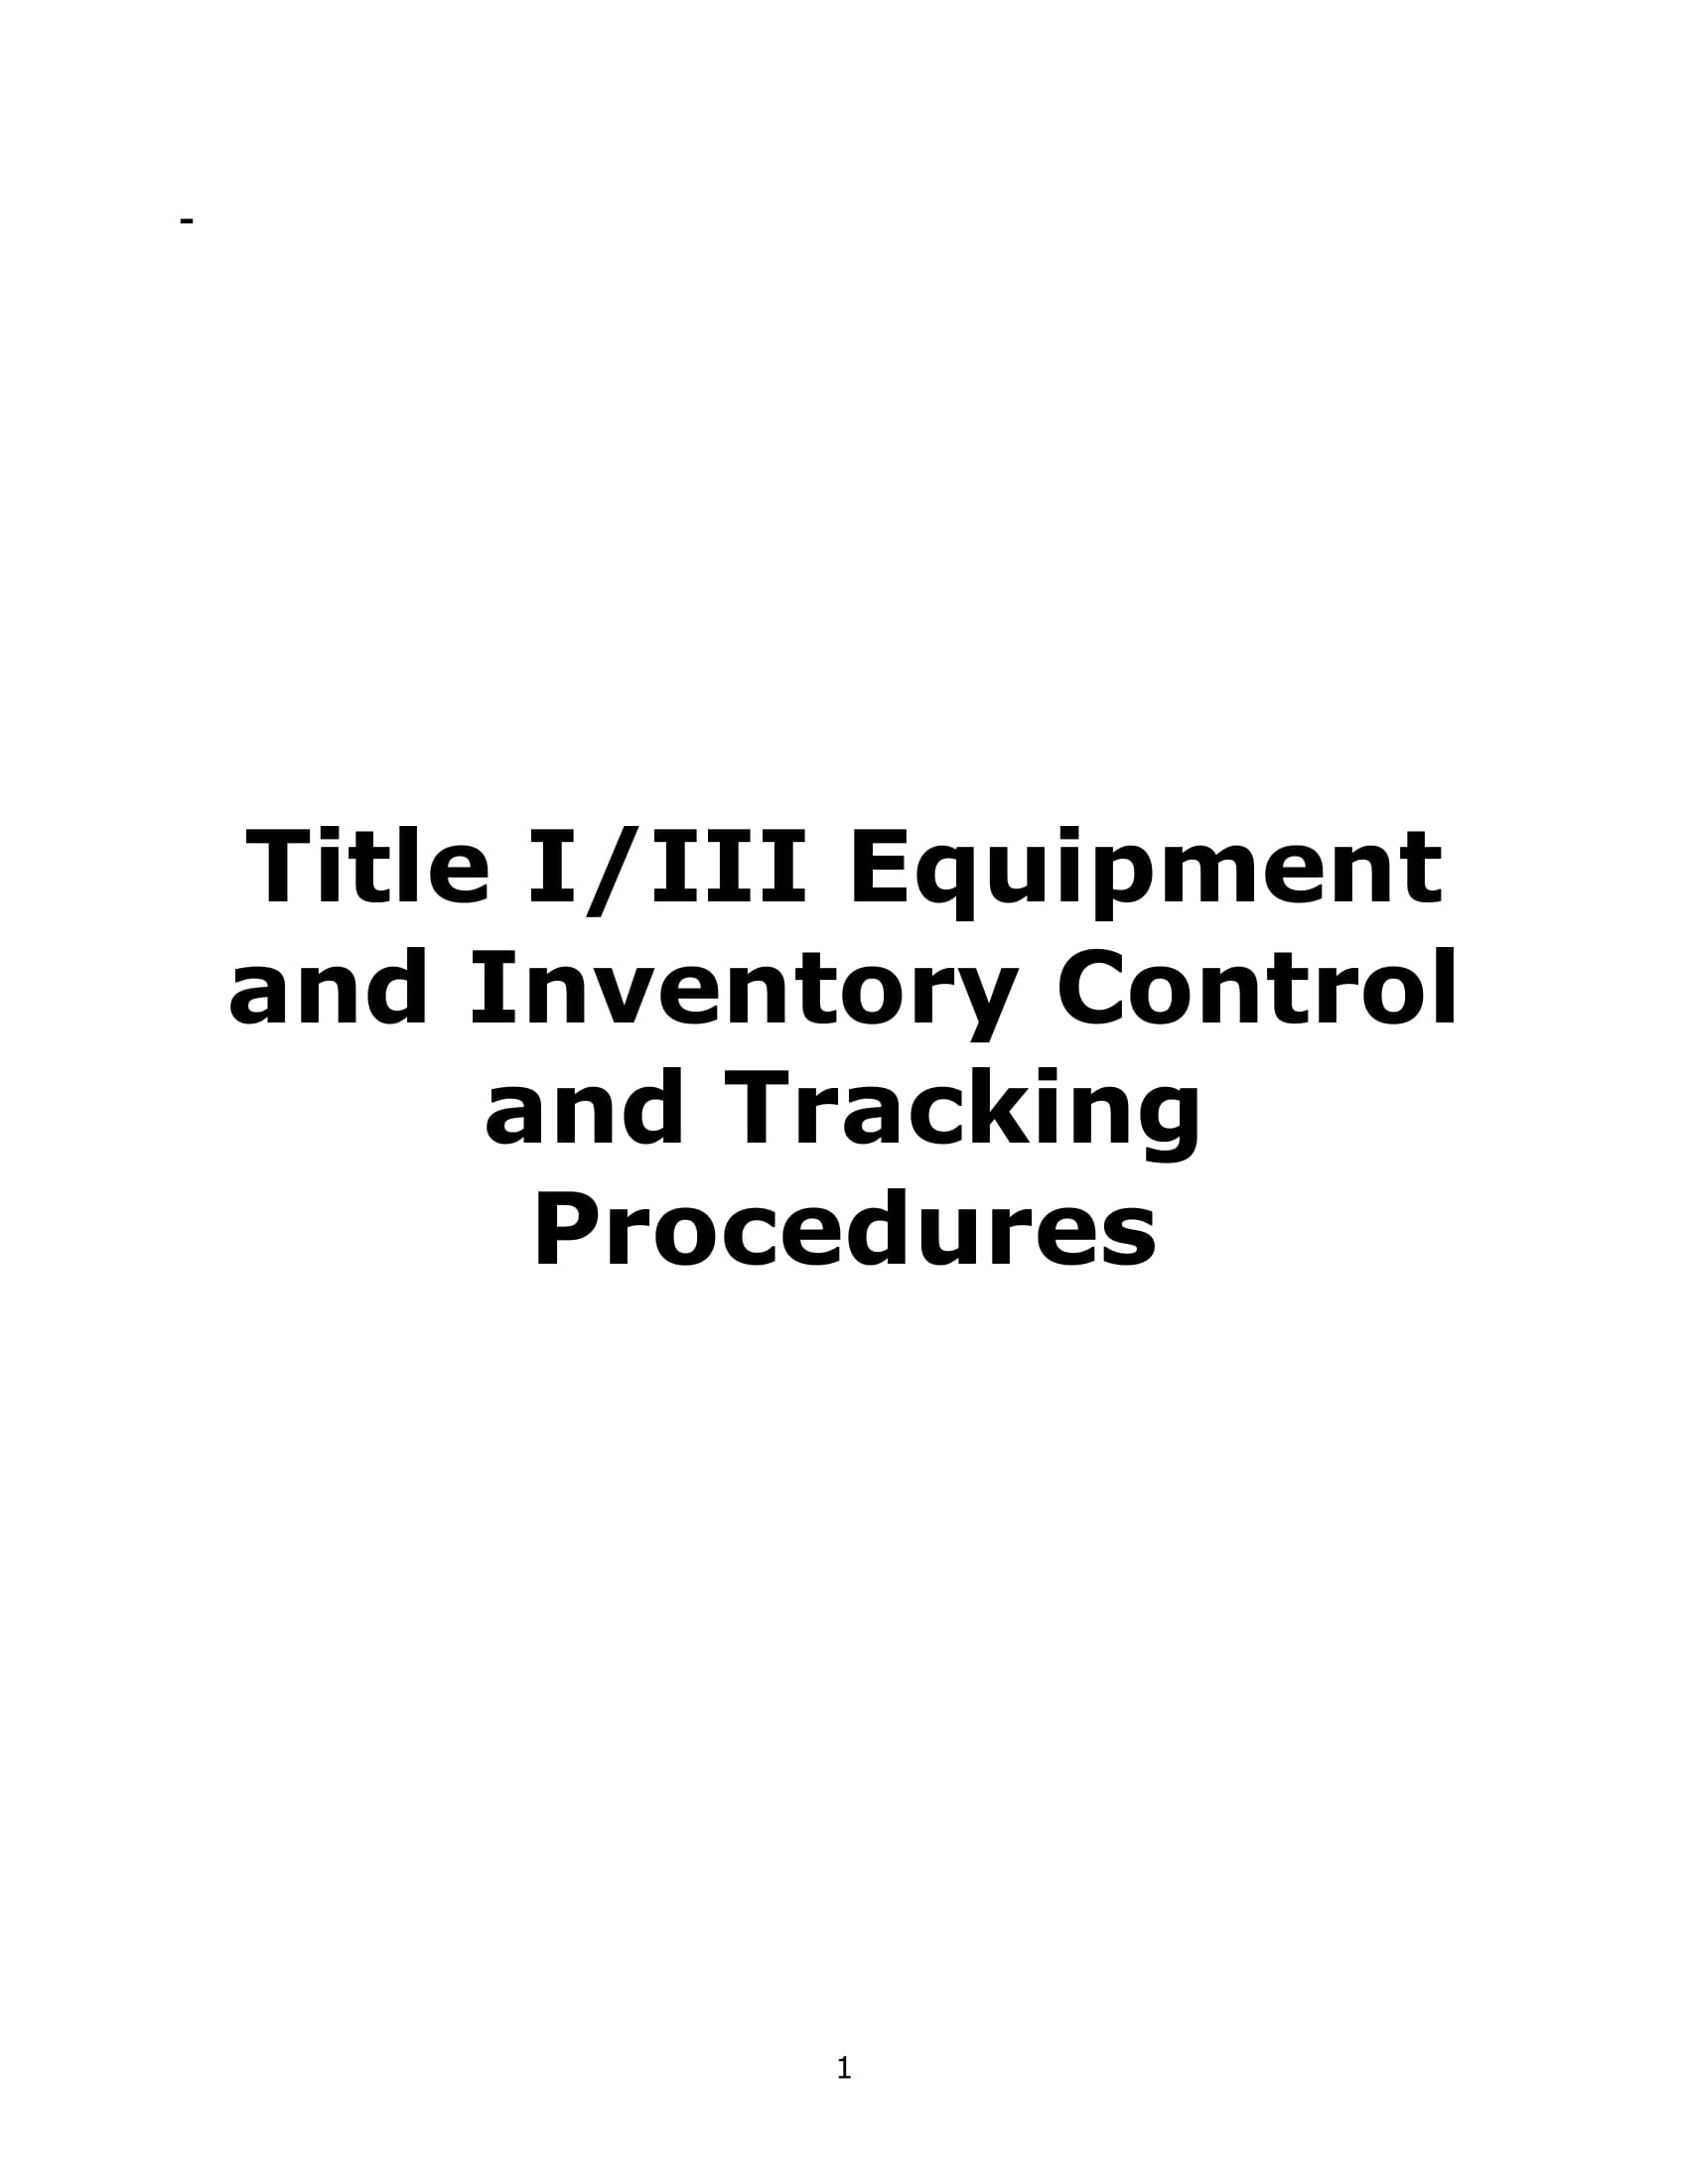 equipment and inventory control and tracking procedure example 11